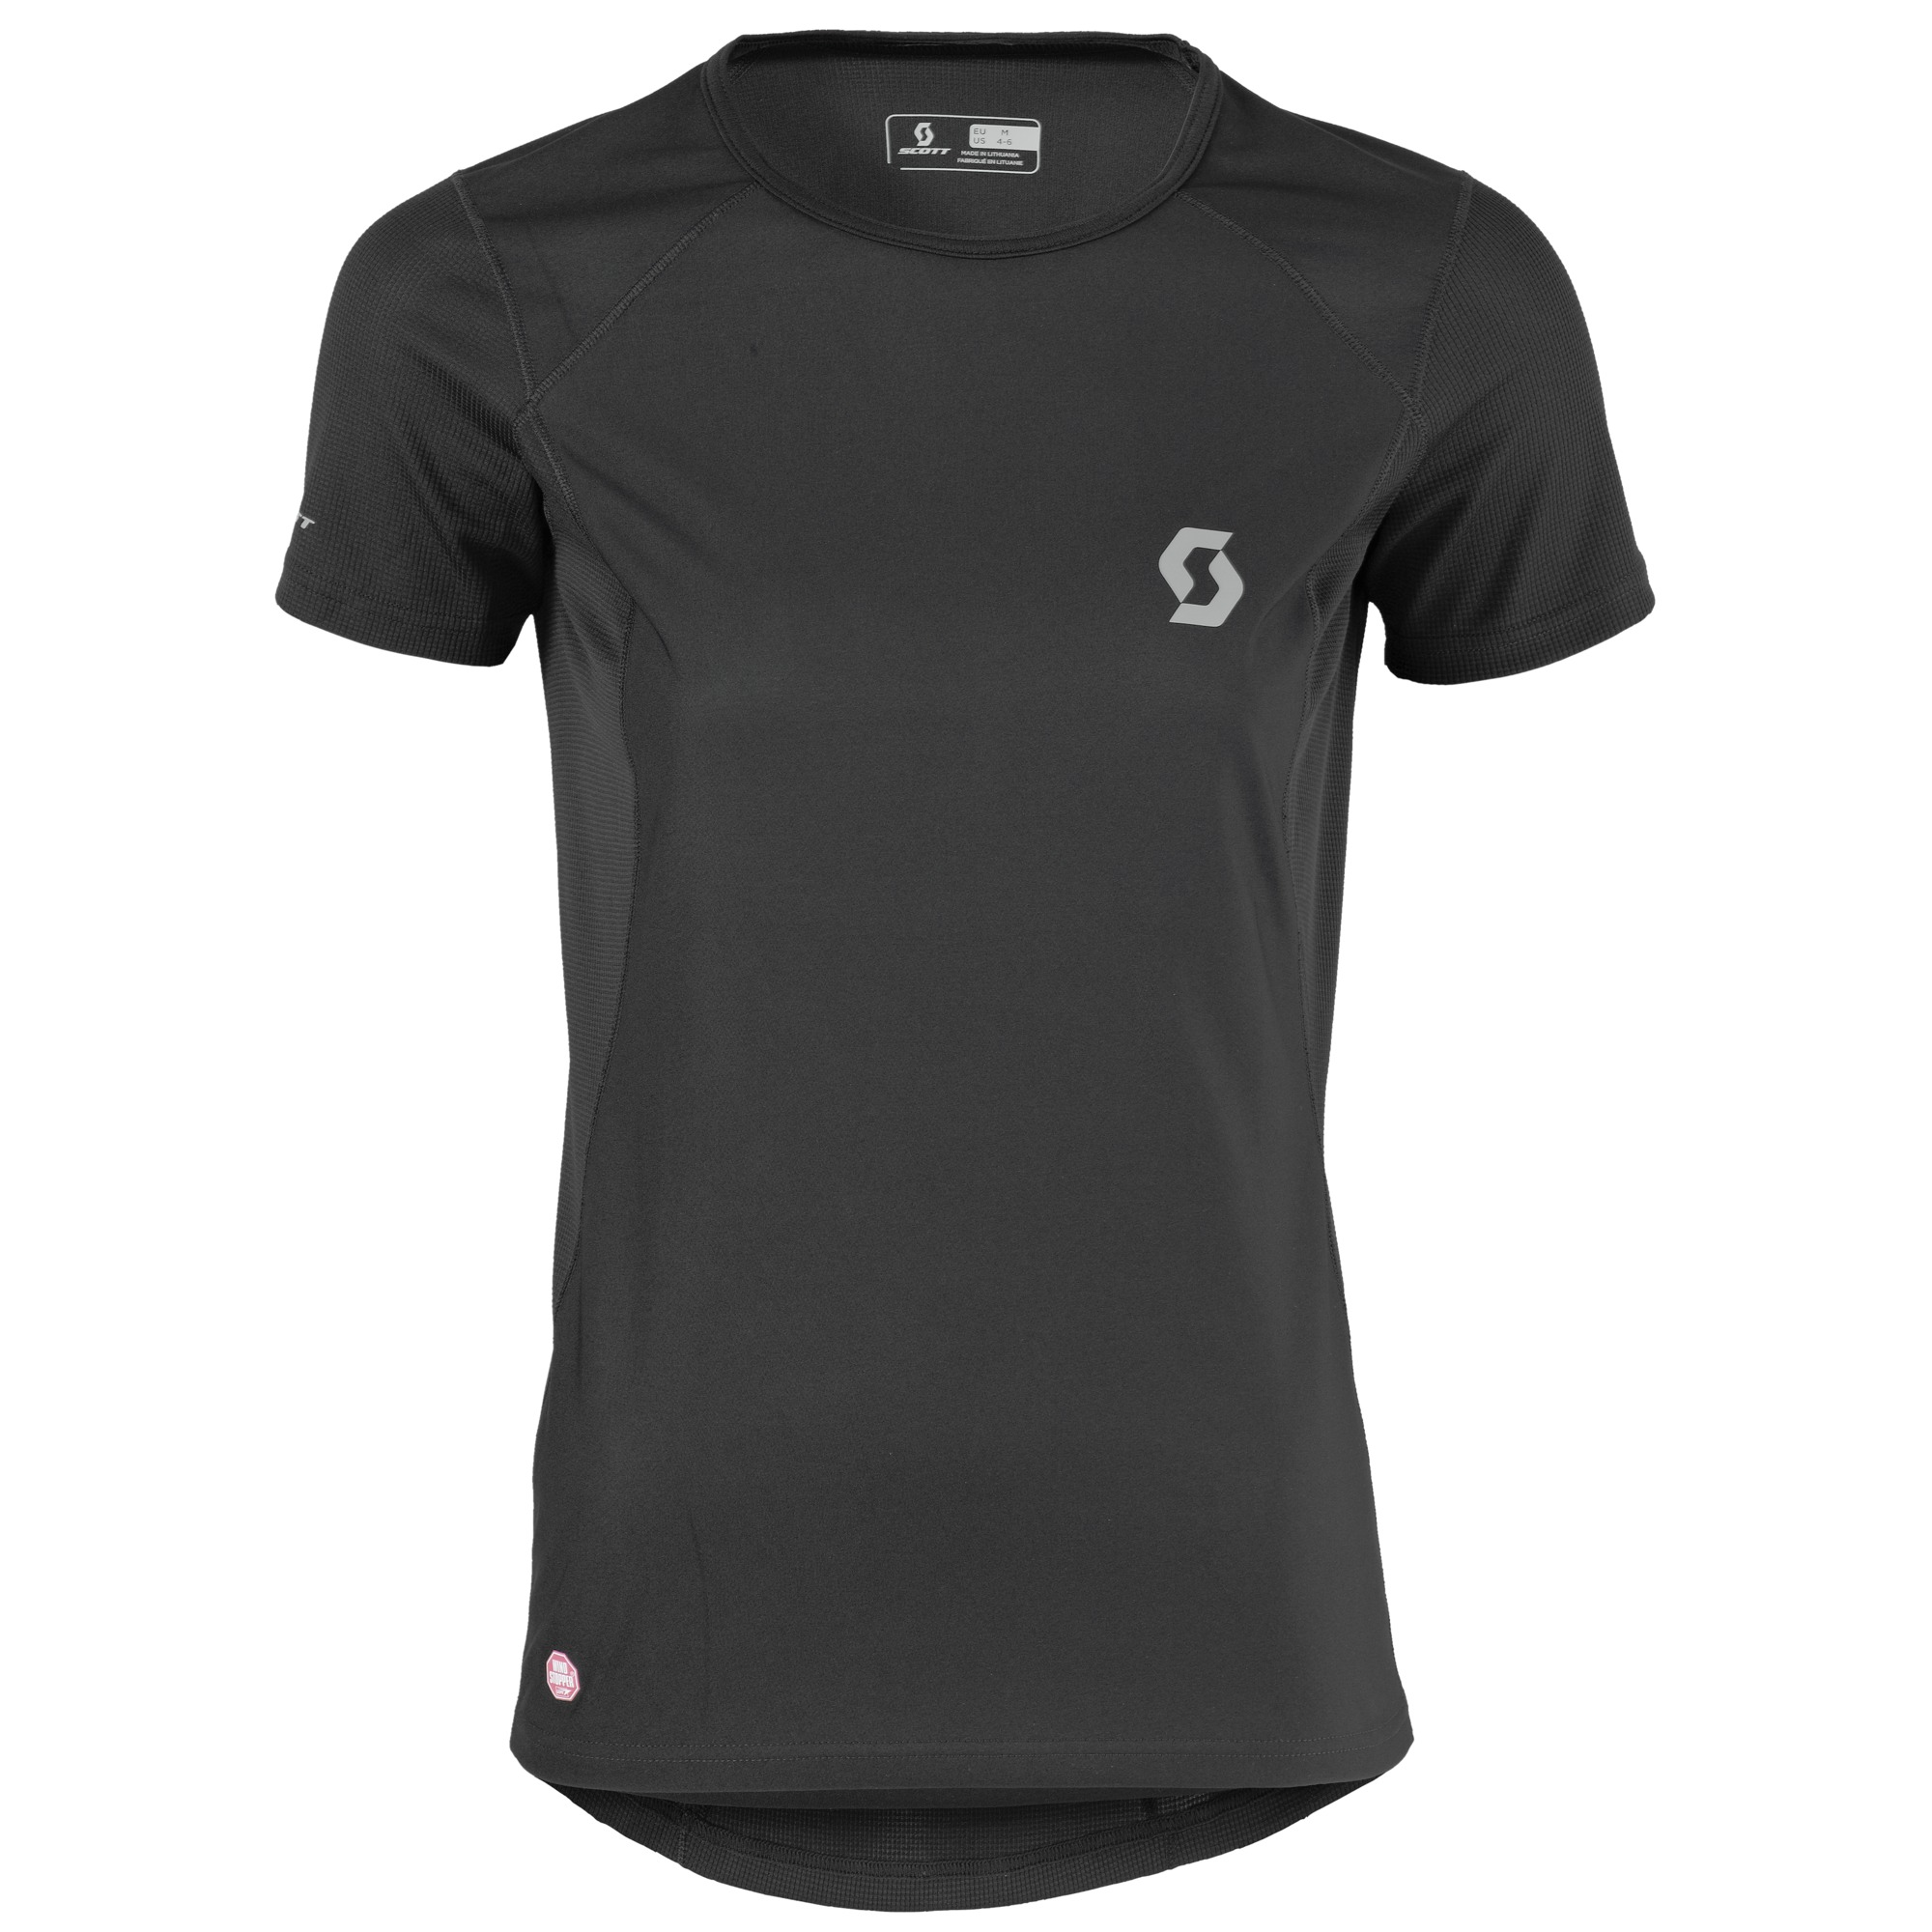 SCOTT Underwear WS s/sl Women's Shirt